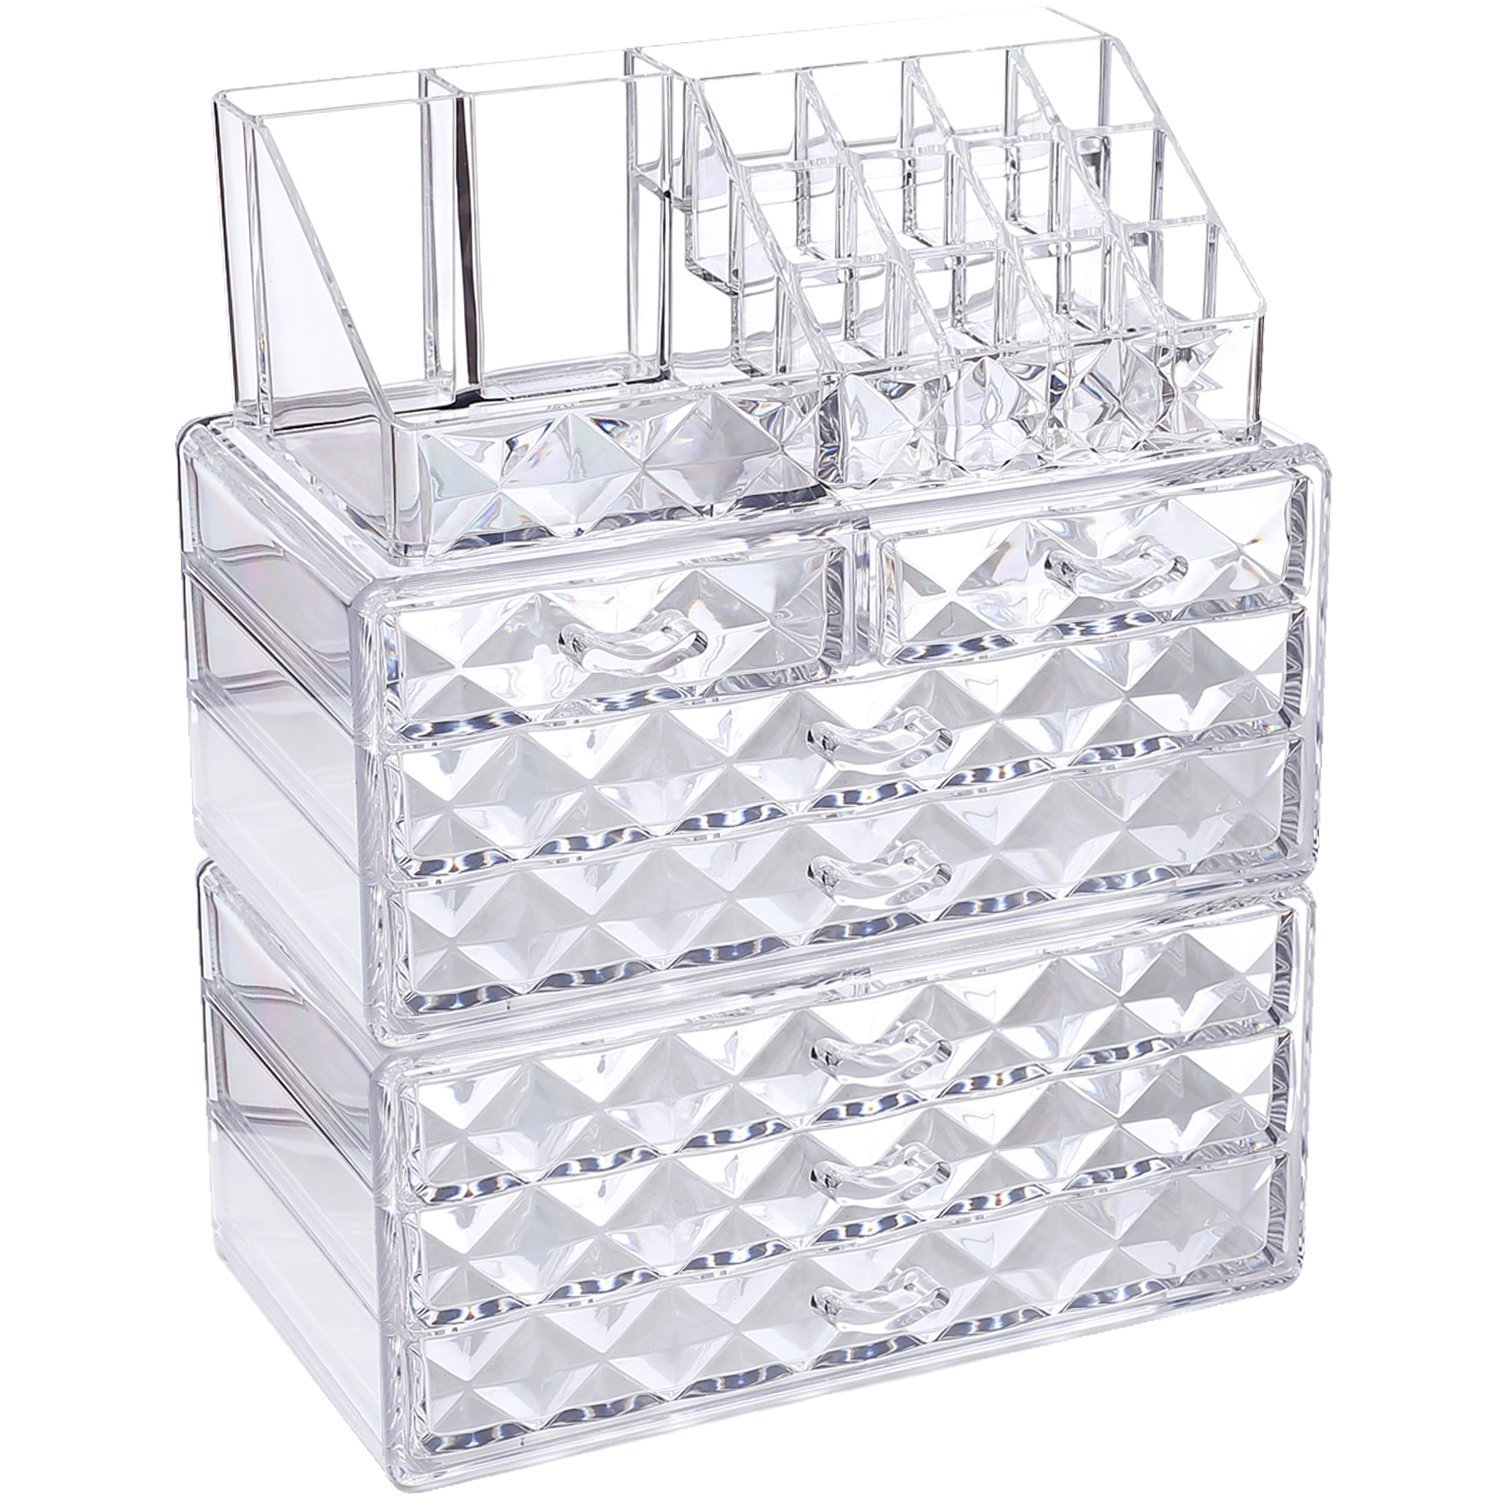 Ikee Design Acrylic Jewelry & Cosmetic/Makeup Storage Display Boxes Set. NILECORP COMS2915